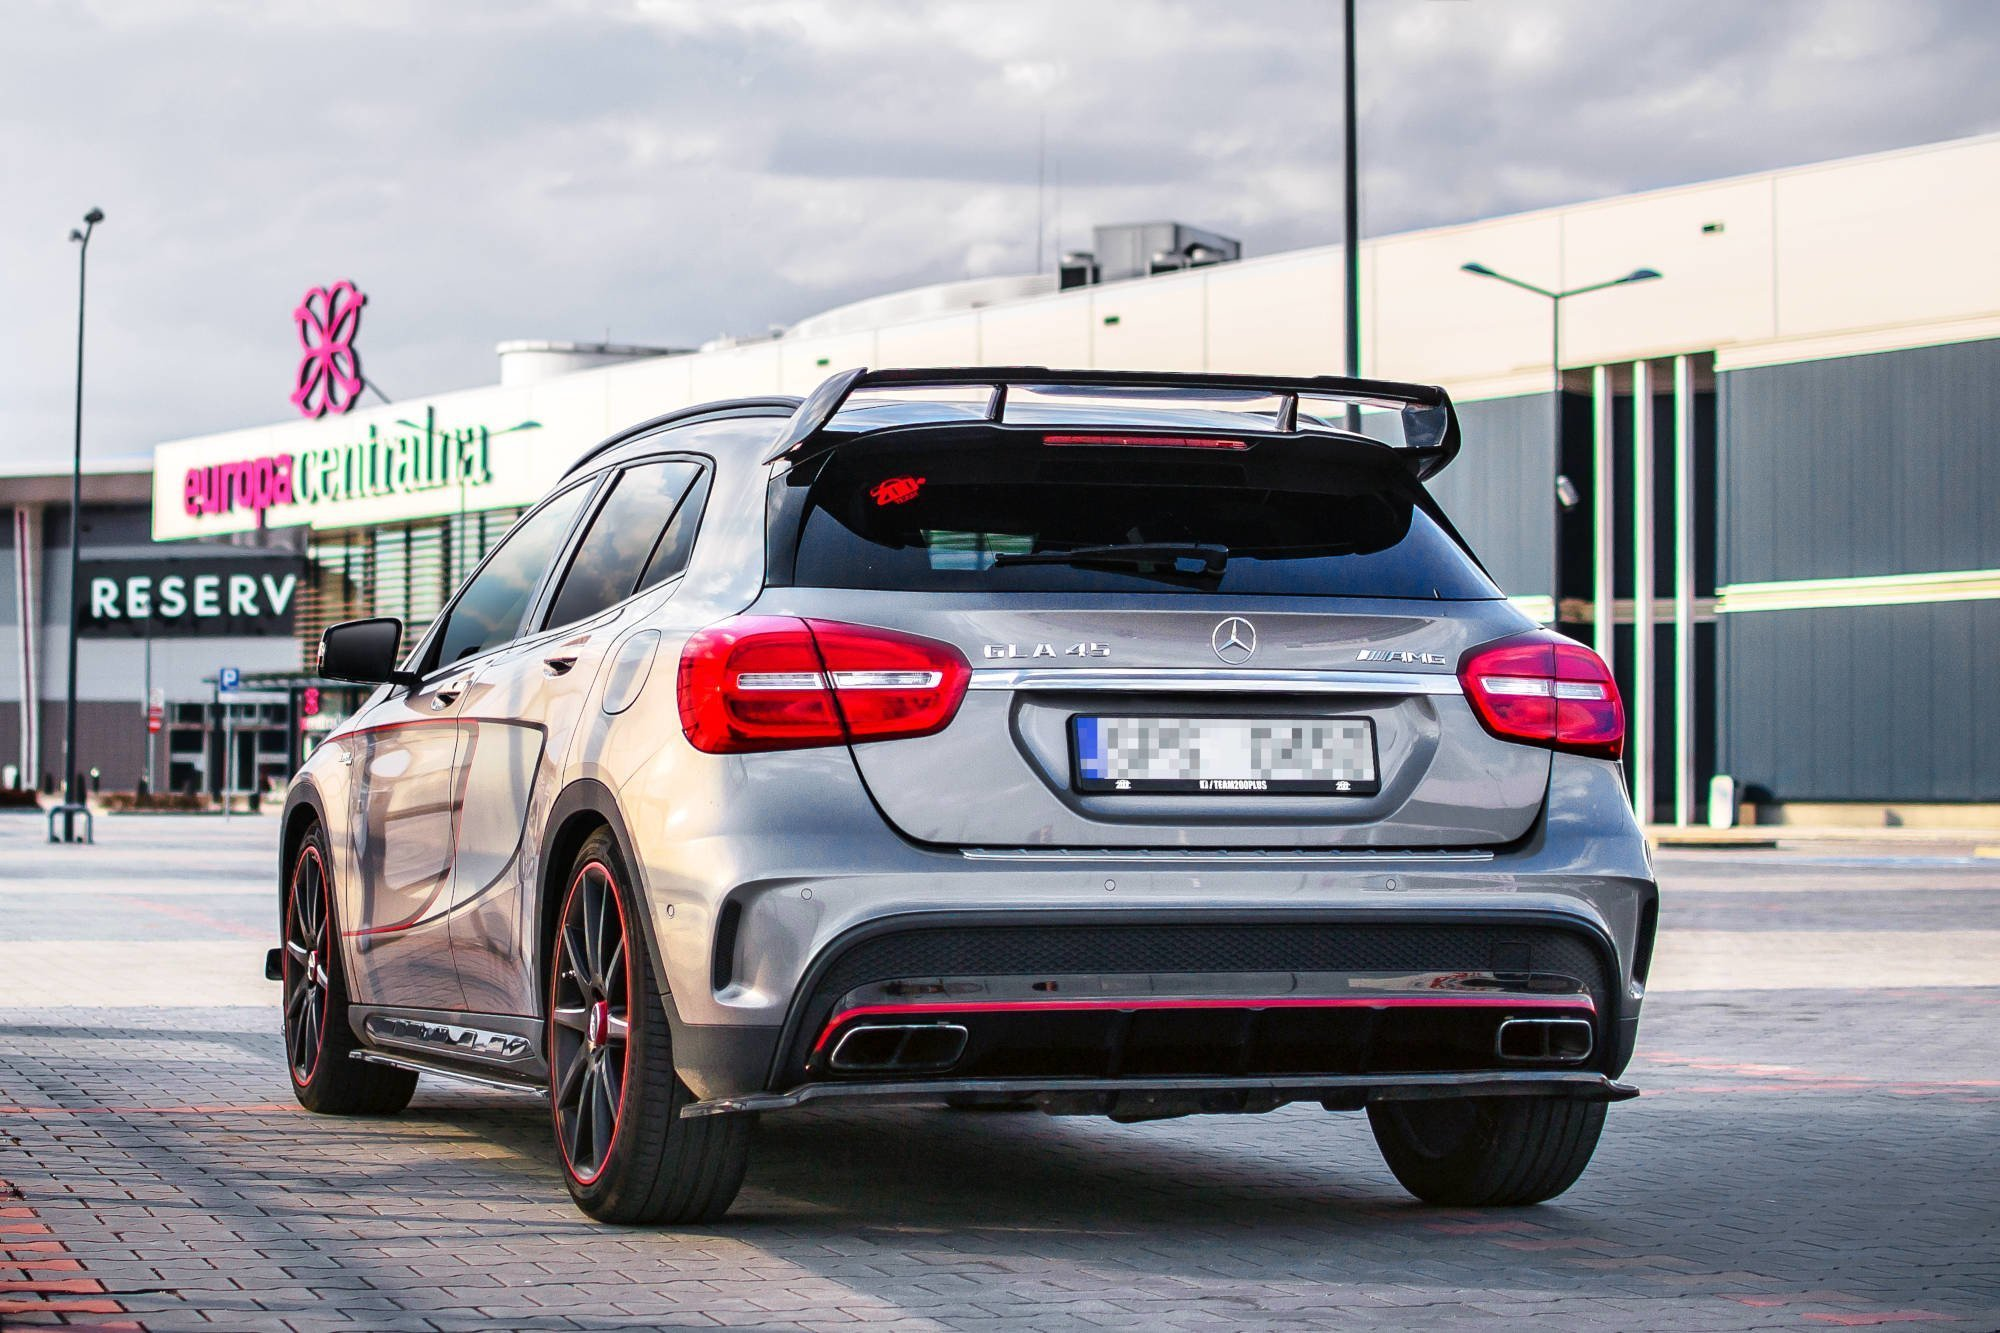 Mercedes Gla 45 Amg >> Spoiler Extension Mercedes Benz Gla 45 Amg Suv X156